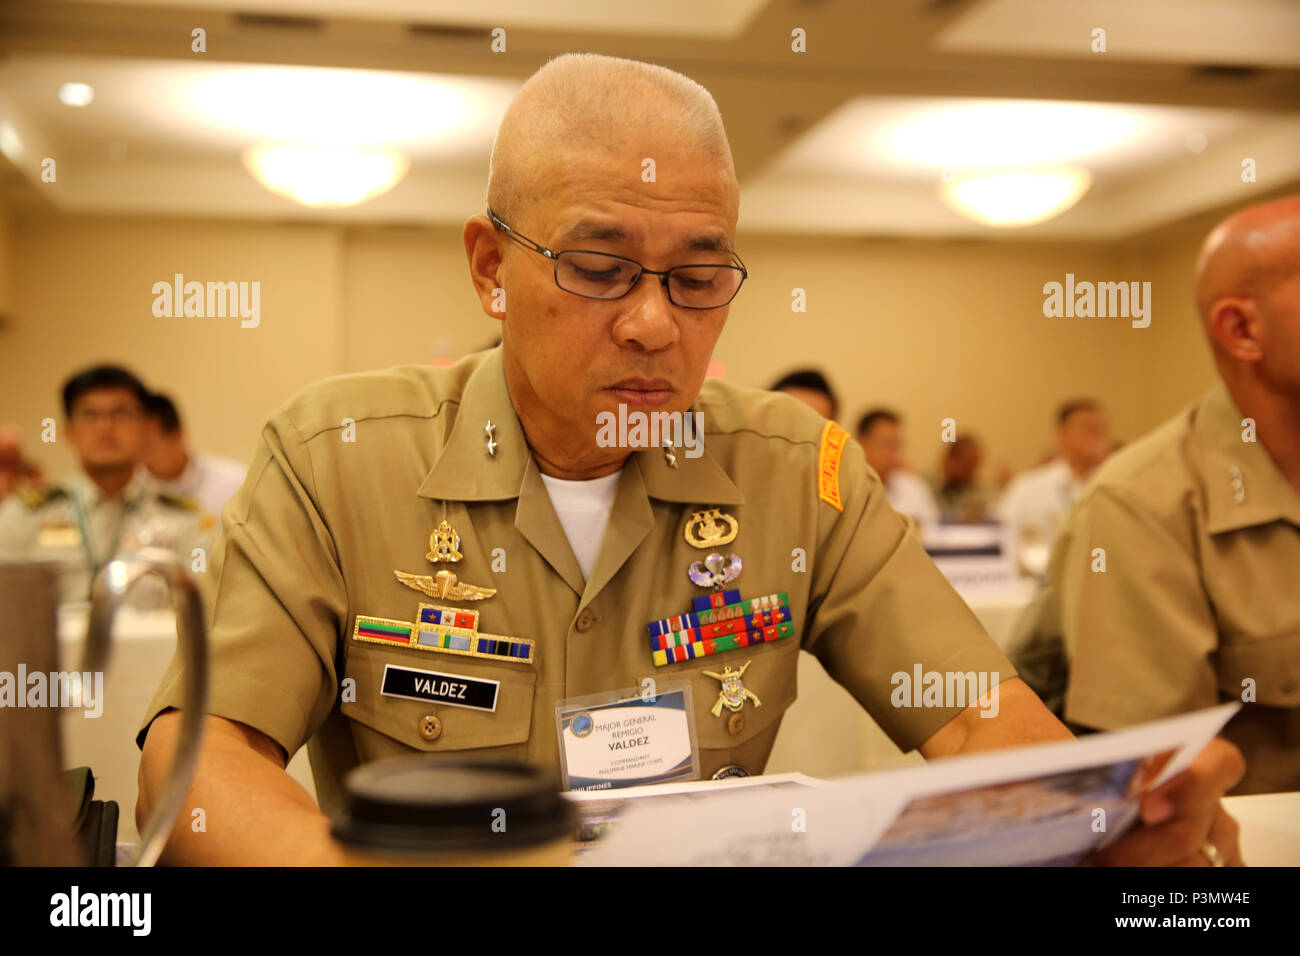 SAN DIEGO Calif. - Major General Remigio Castro Valdez (right), commandant of the Philippine Marine Corps, takes part in  the Pacific Command Amphibious Leaders Symposium 2016 conference in San Diego, Calif.,  July 11, 2016. PALS brings together senior leaders of allied and partner nations throughout the Indo-Asia-Pacific region. The symposium consists of academic and group discussions, a Table-Top Exercise and an amphibious landing demonstration. (U.S. Marine Corps photo by Cpl. Demetrius Morgan/ RELEASED) Stock Photo